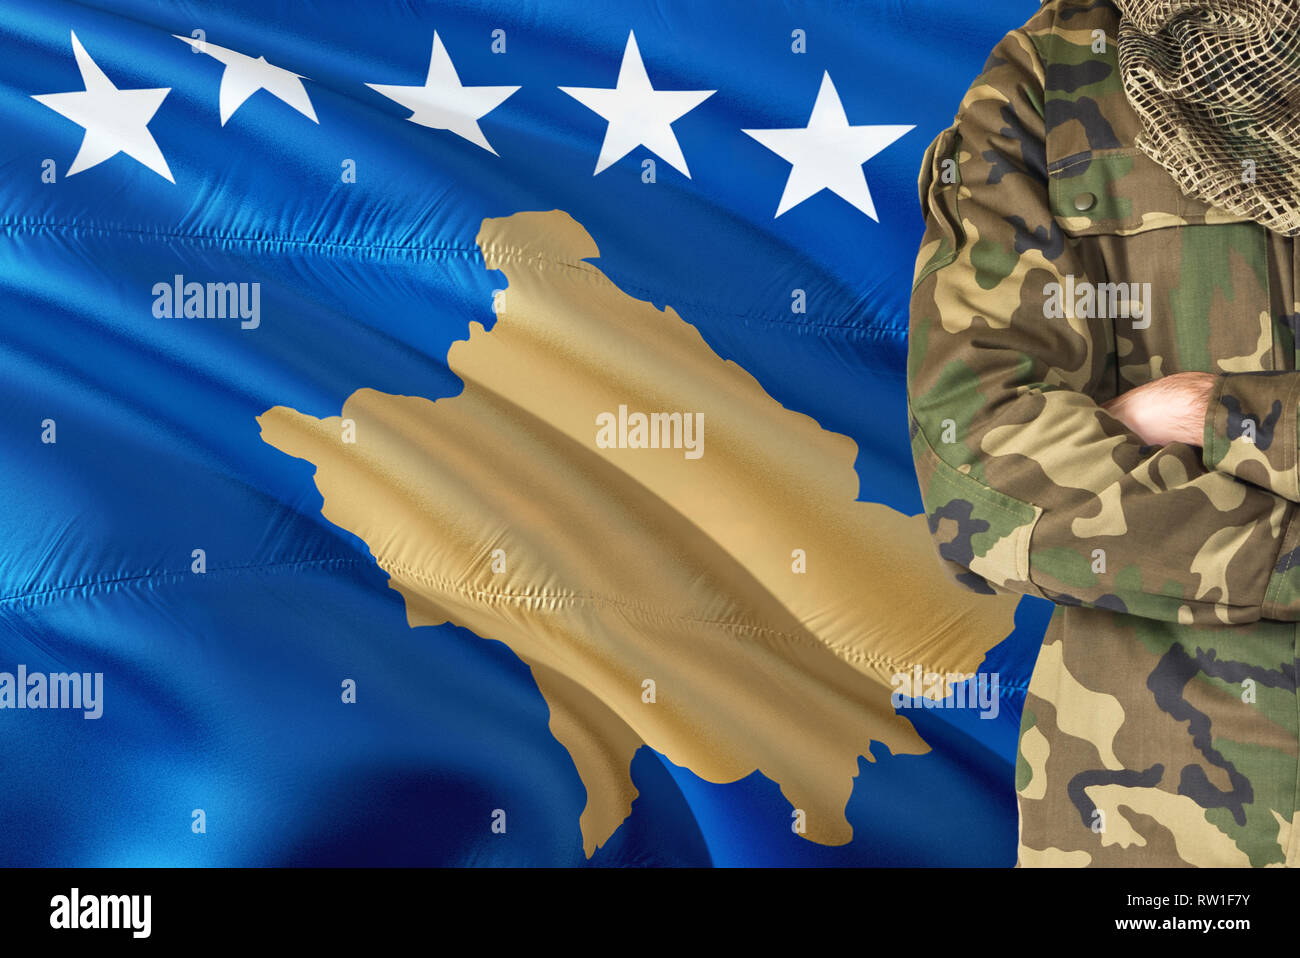 Crossed arms soldier with national waving flag on background - Kosovo Military theme. Stock Photo